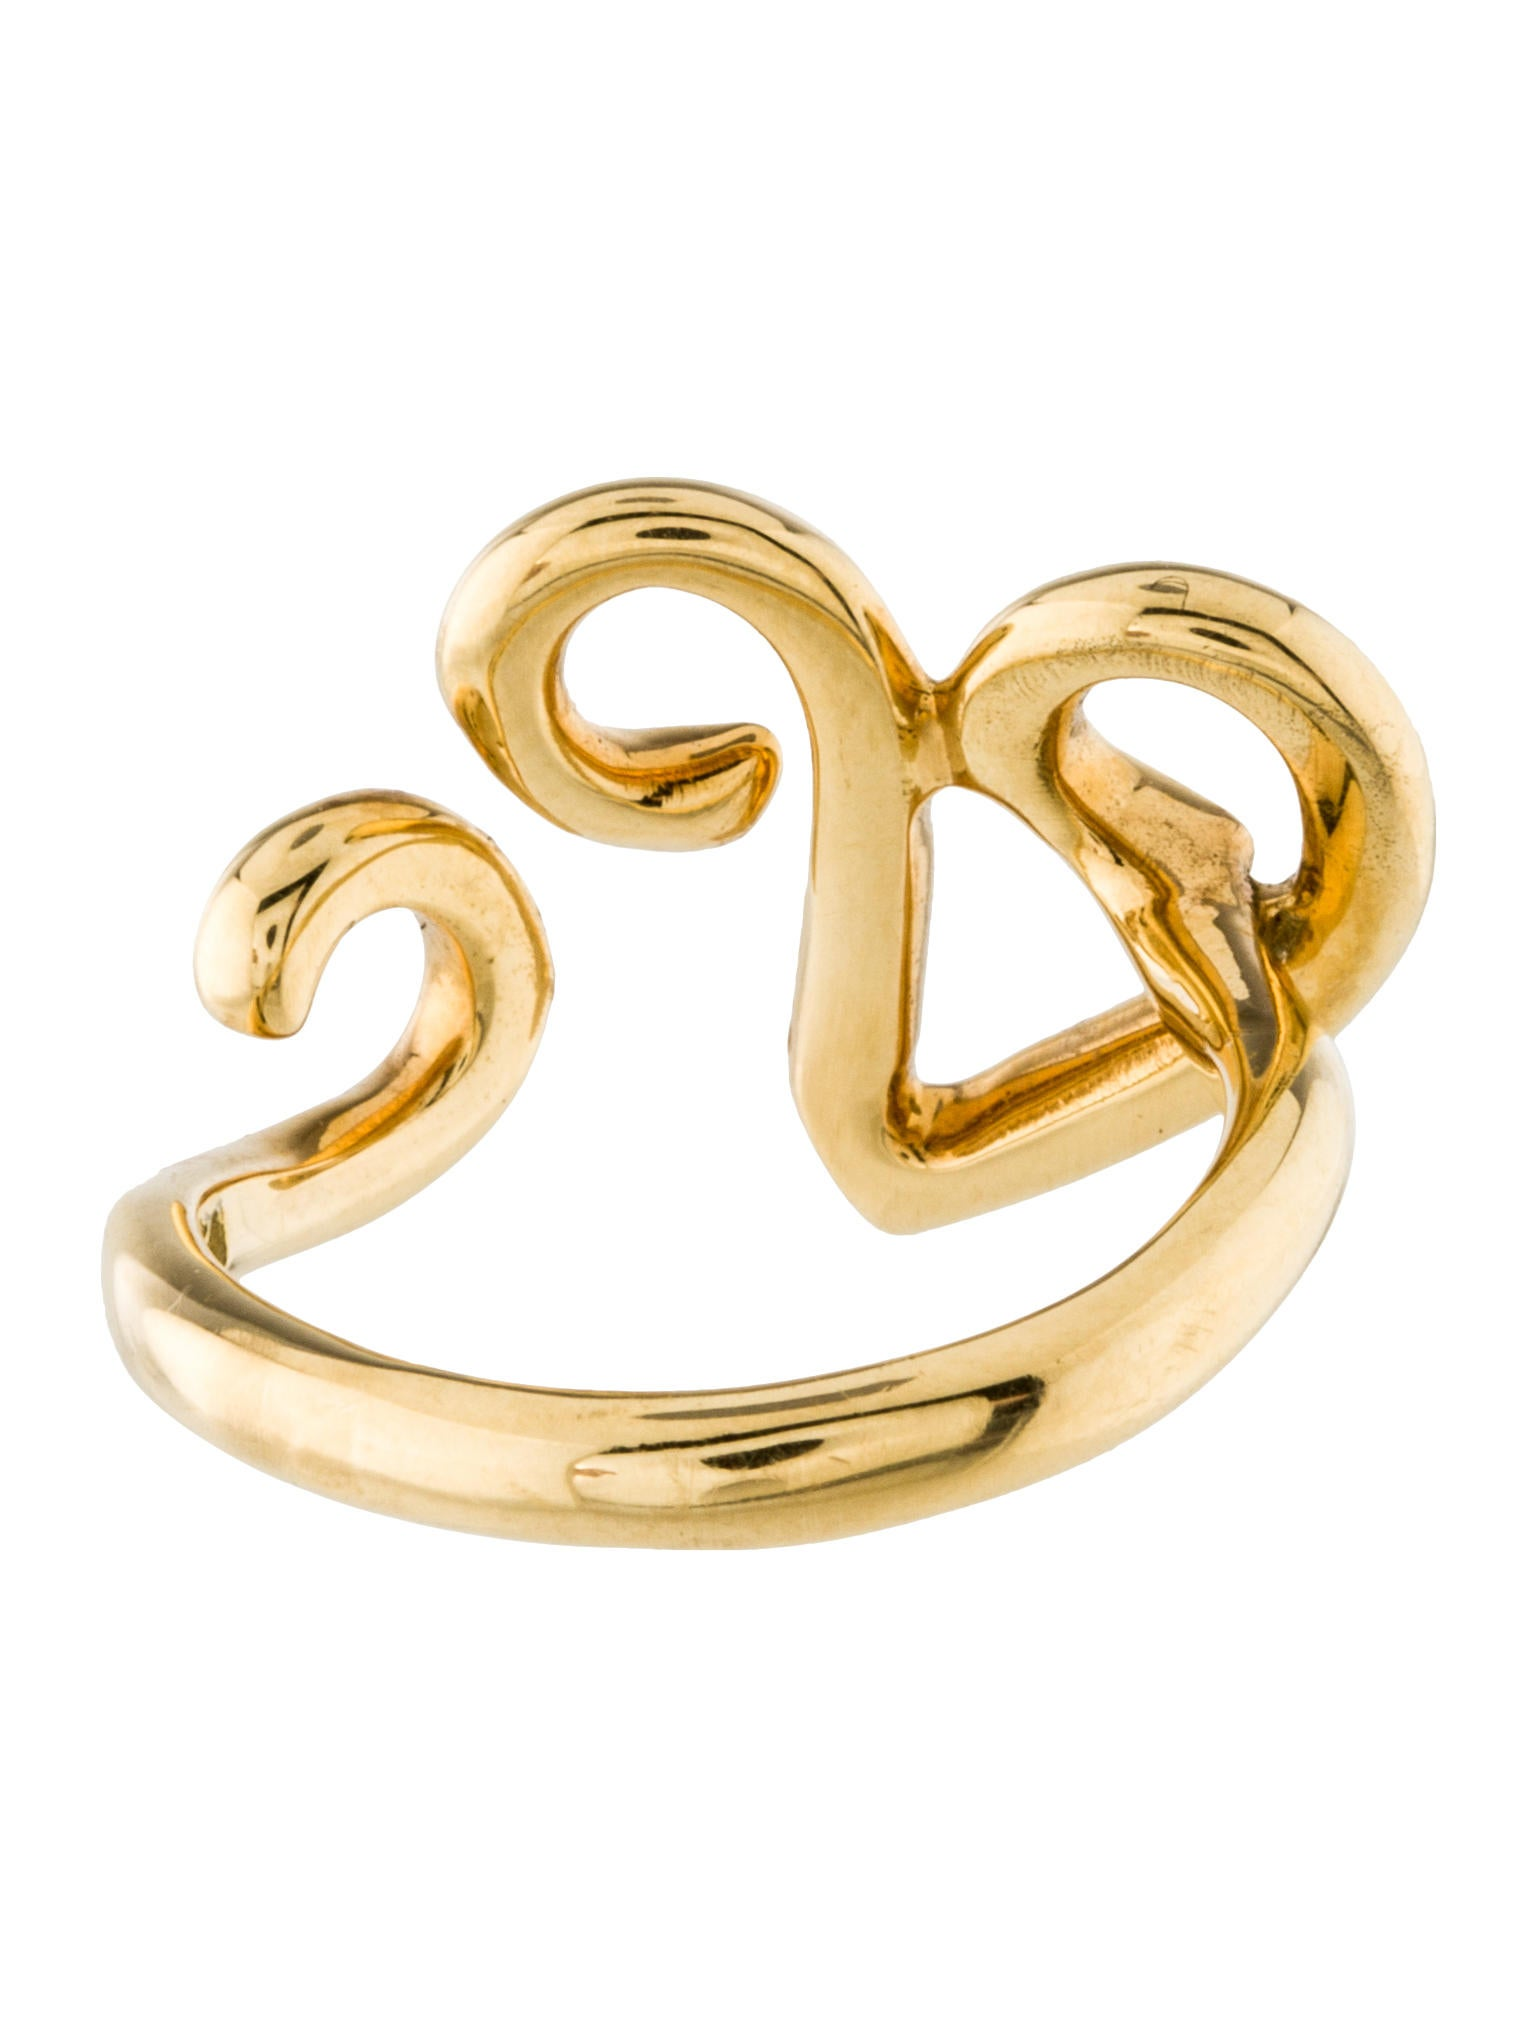 Tiffany Amp Co Paloma Picasso Swirl Ring Rings Tif50771 The Realreal